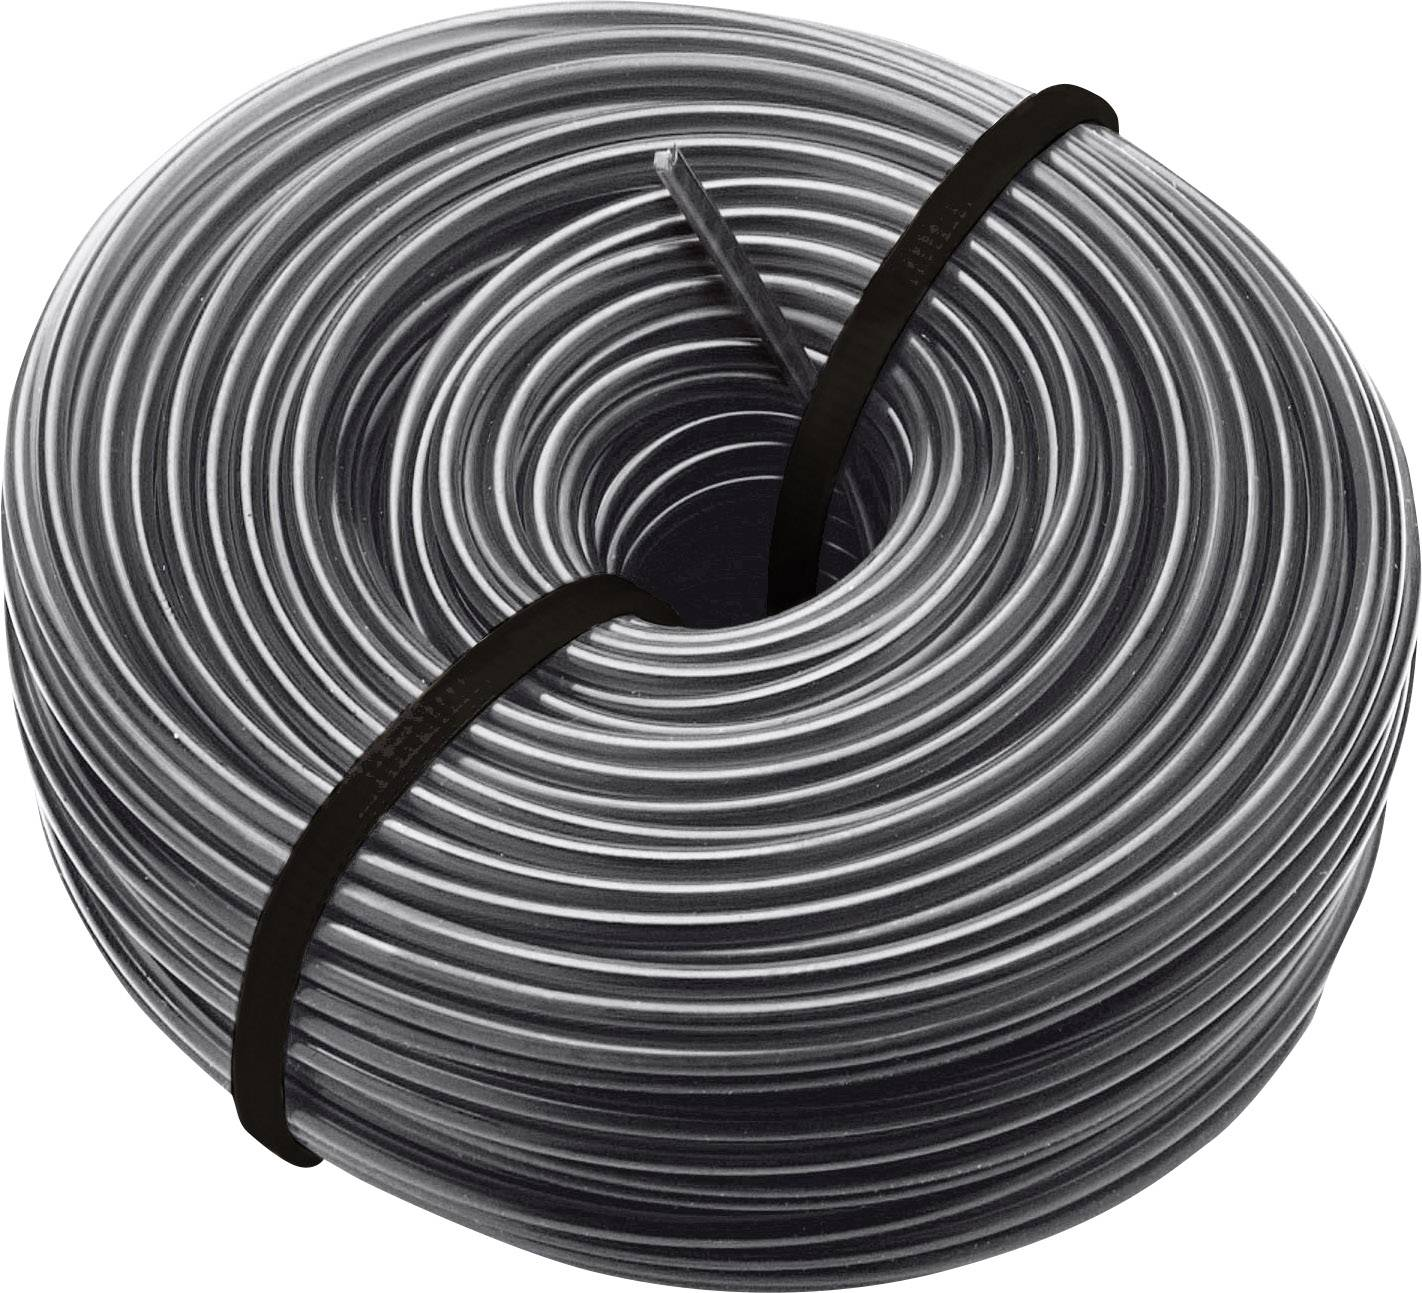 Bosch Home and Garden F016800462 Replacement filament